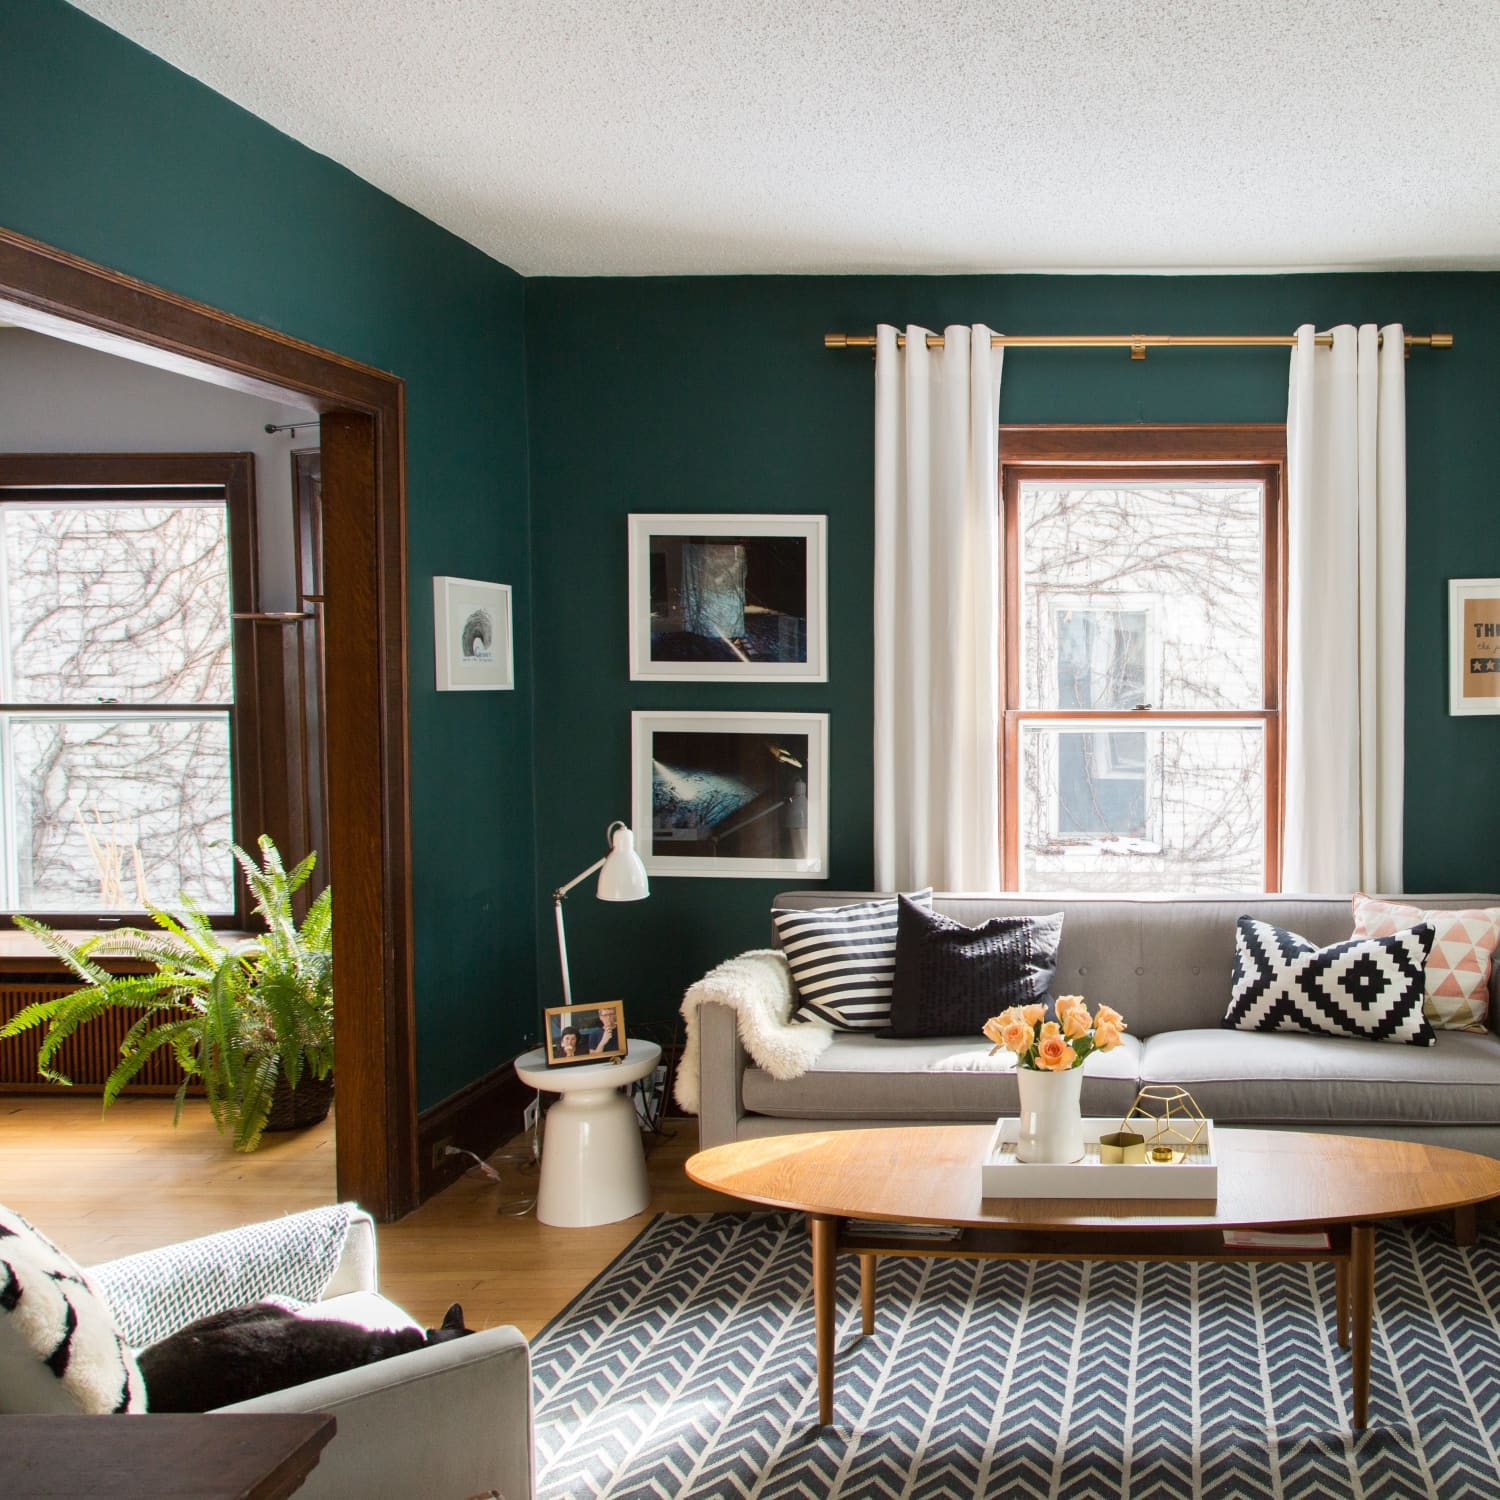 The Paint Color Ideas that Can Give Coziness to Your Living Room